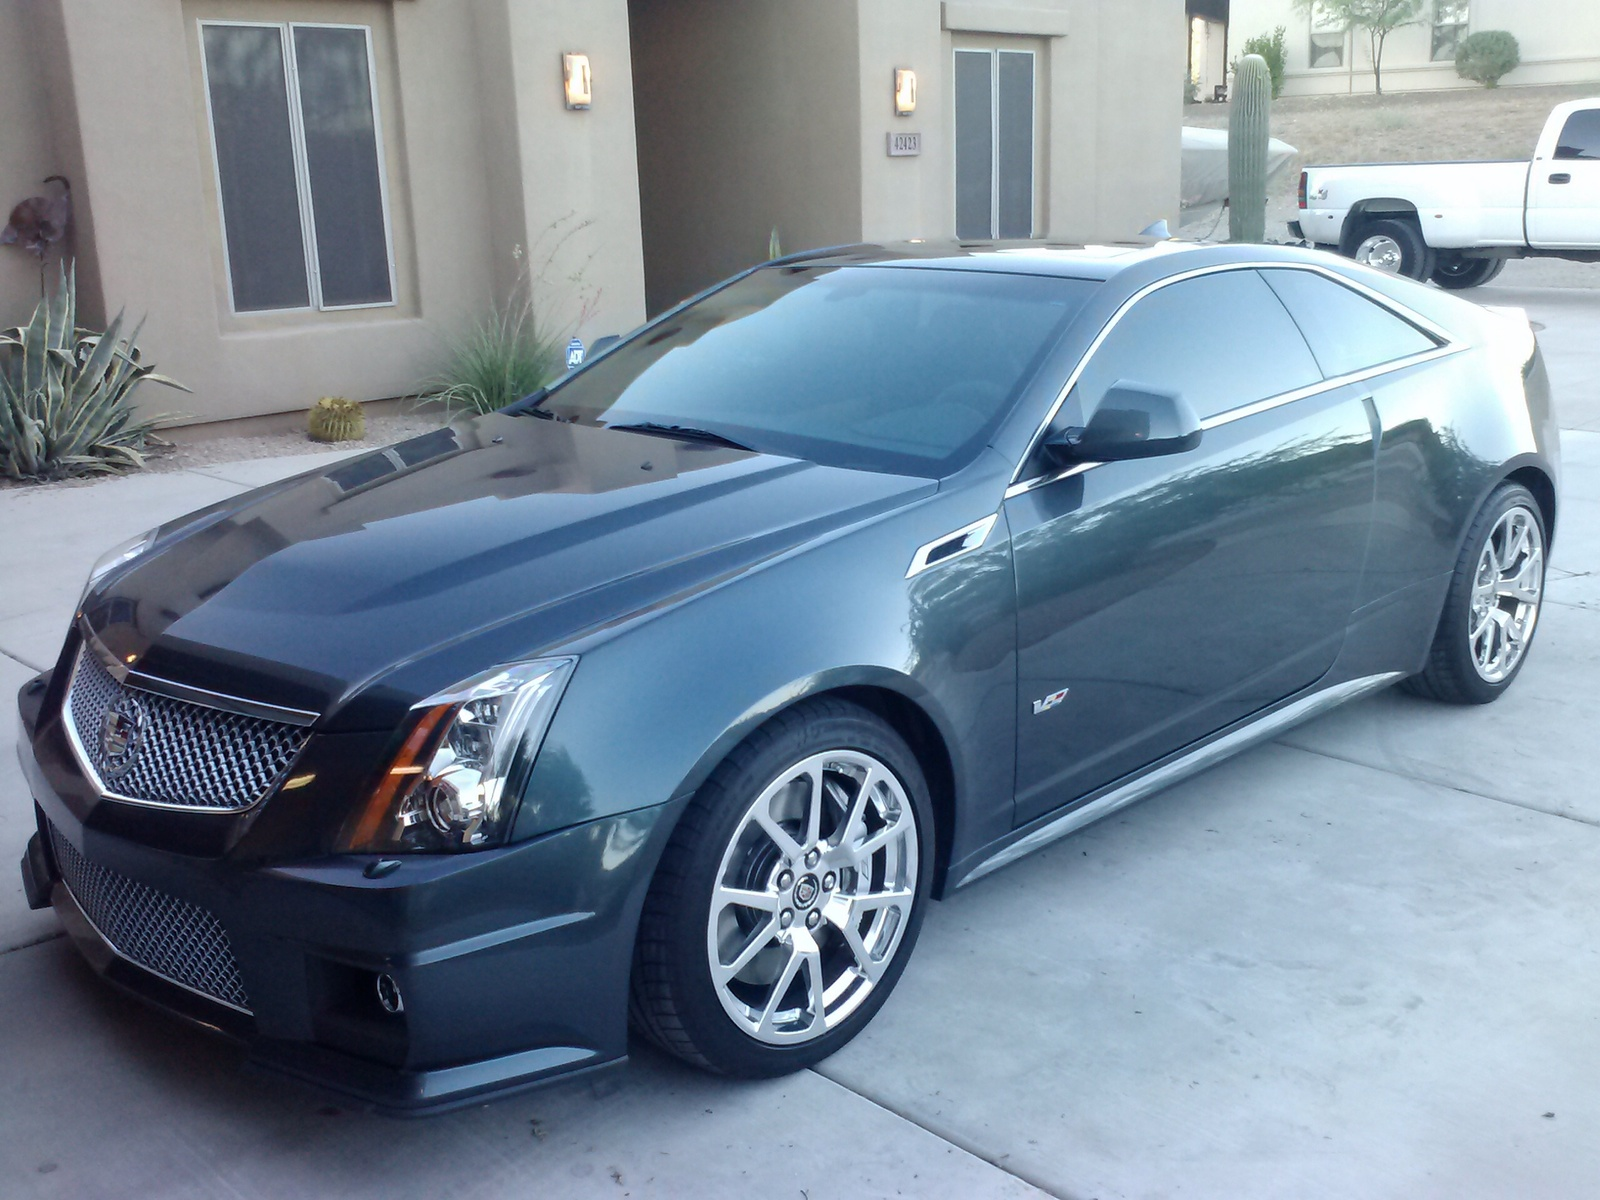 2012 cadillac cts v coupe pictures cargurus. Cars Review. Best American Auto & Cars Review